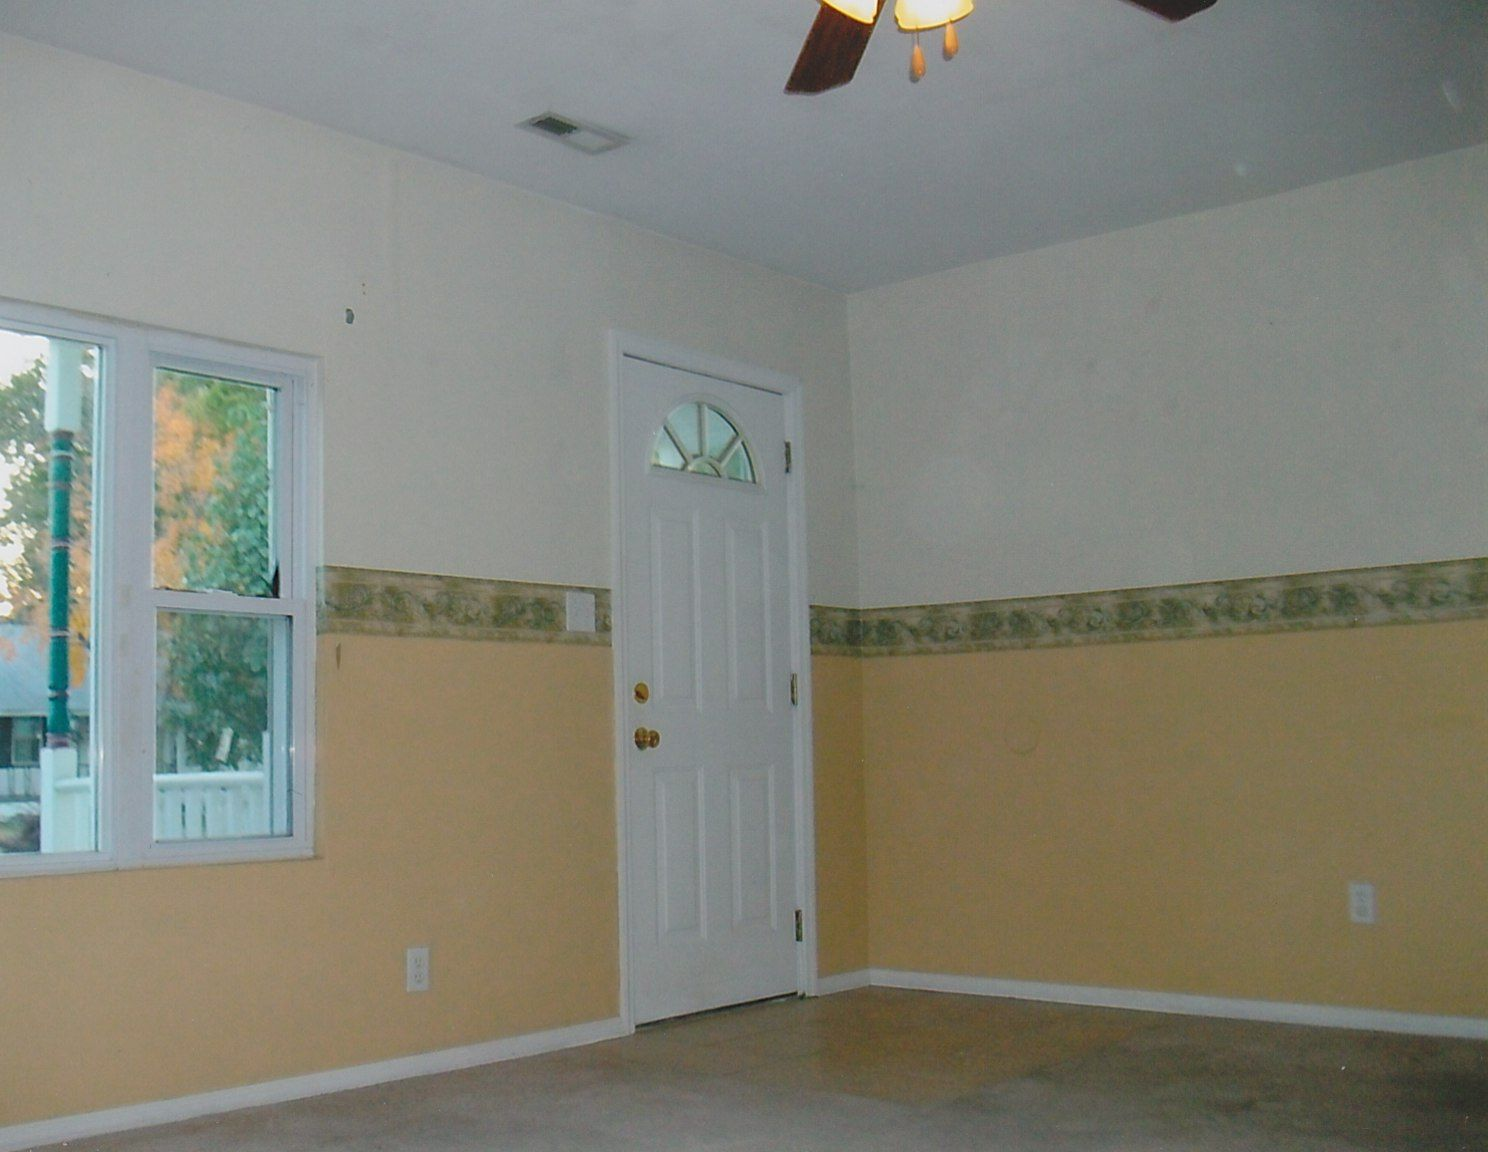 Living Room Borders In Paint Wall Covering Supplies Compare